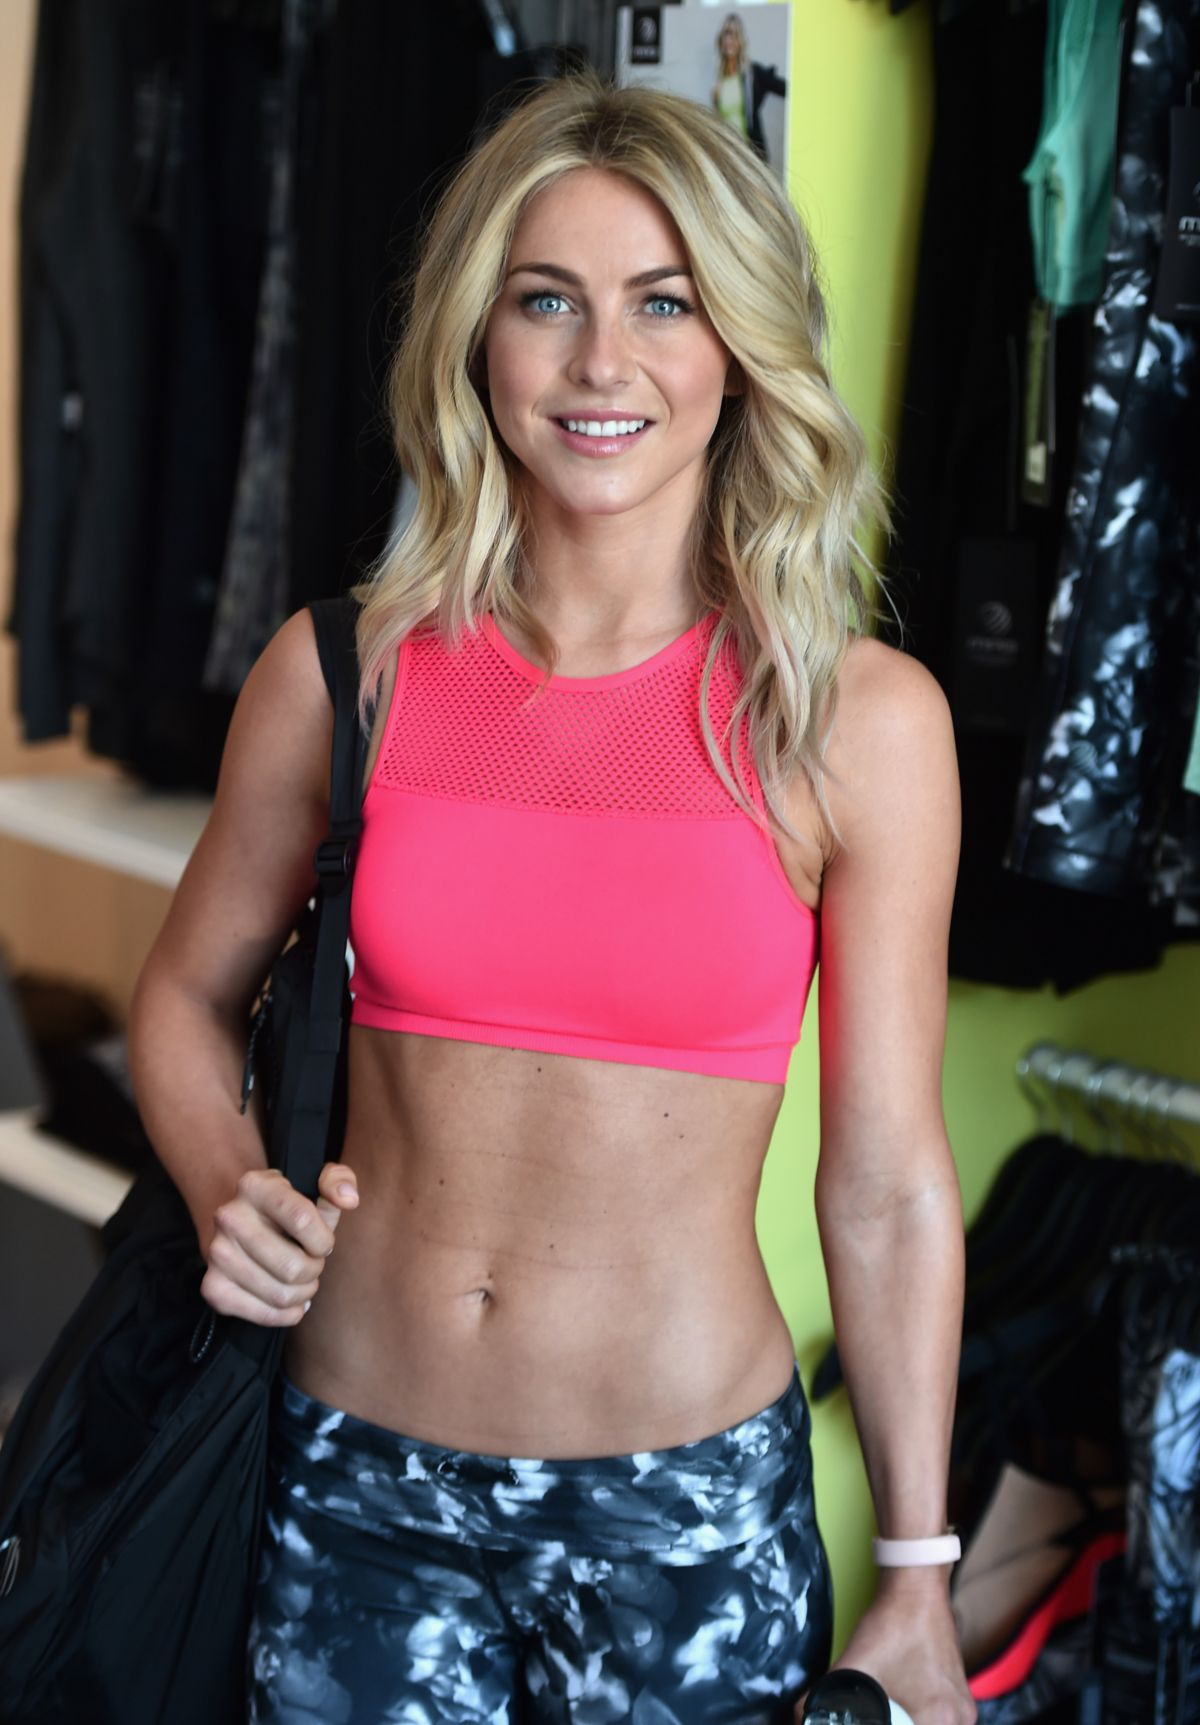 JULIANNE HOUGH at Shape Body Shop Launch in Los Angeles 06/18/2016